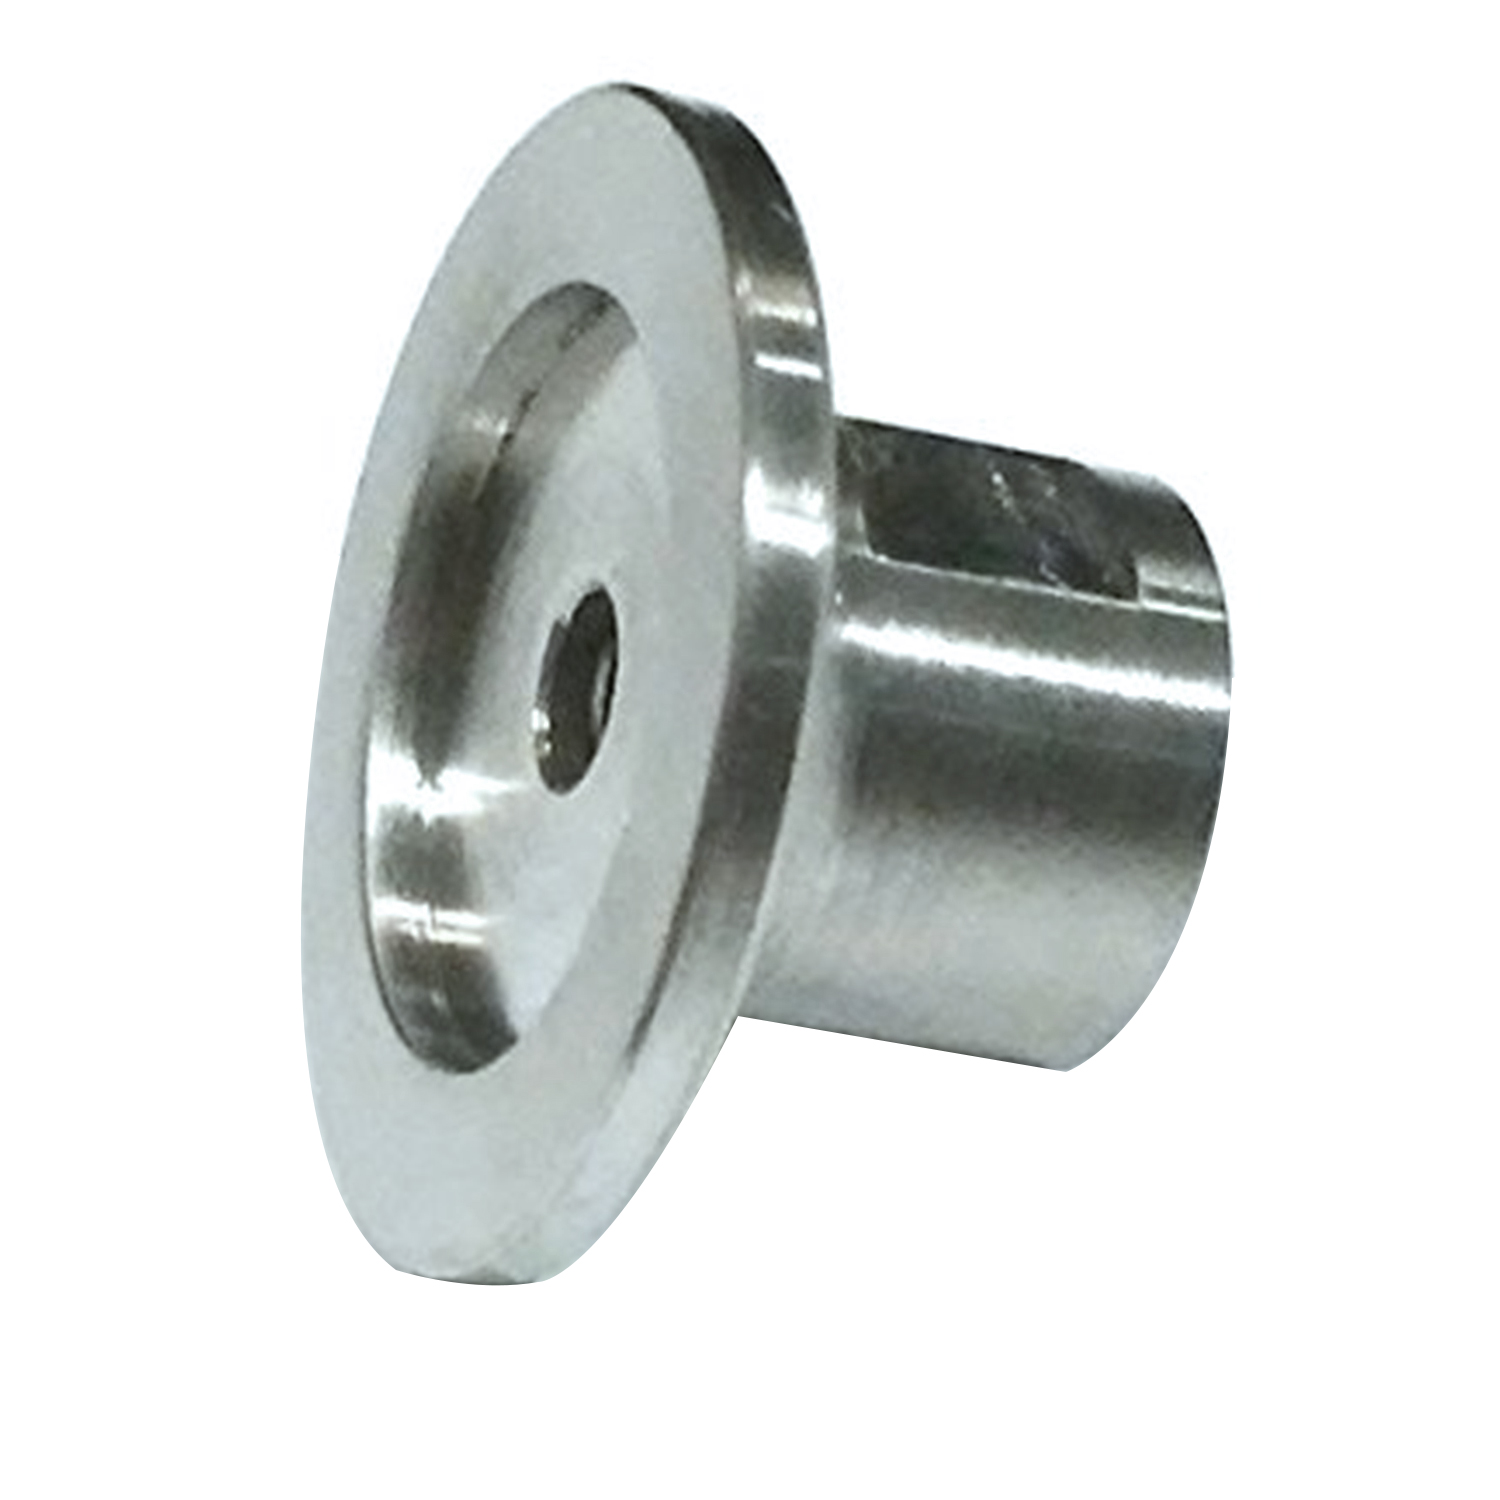 R NW-25 to 1//4 SAE Female Thread Stainless Steel 304 HFS KF25